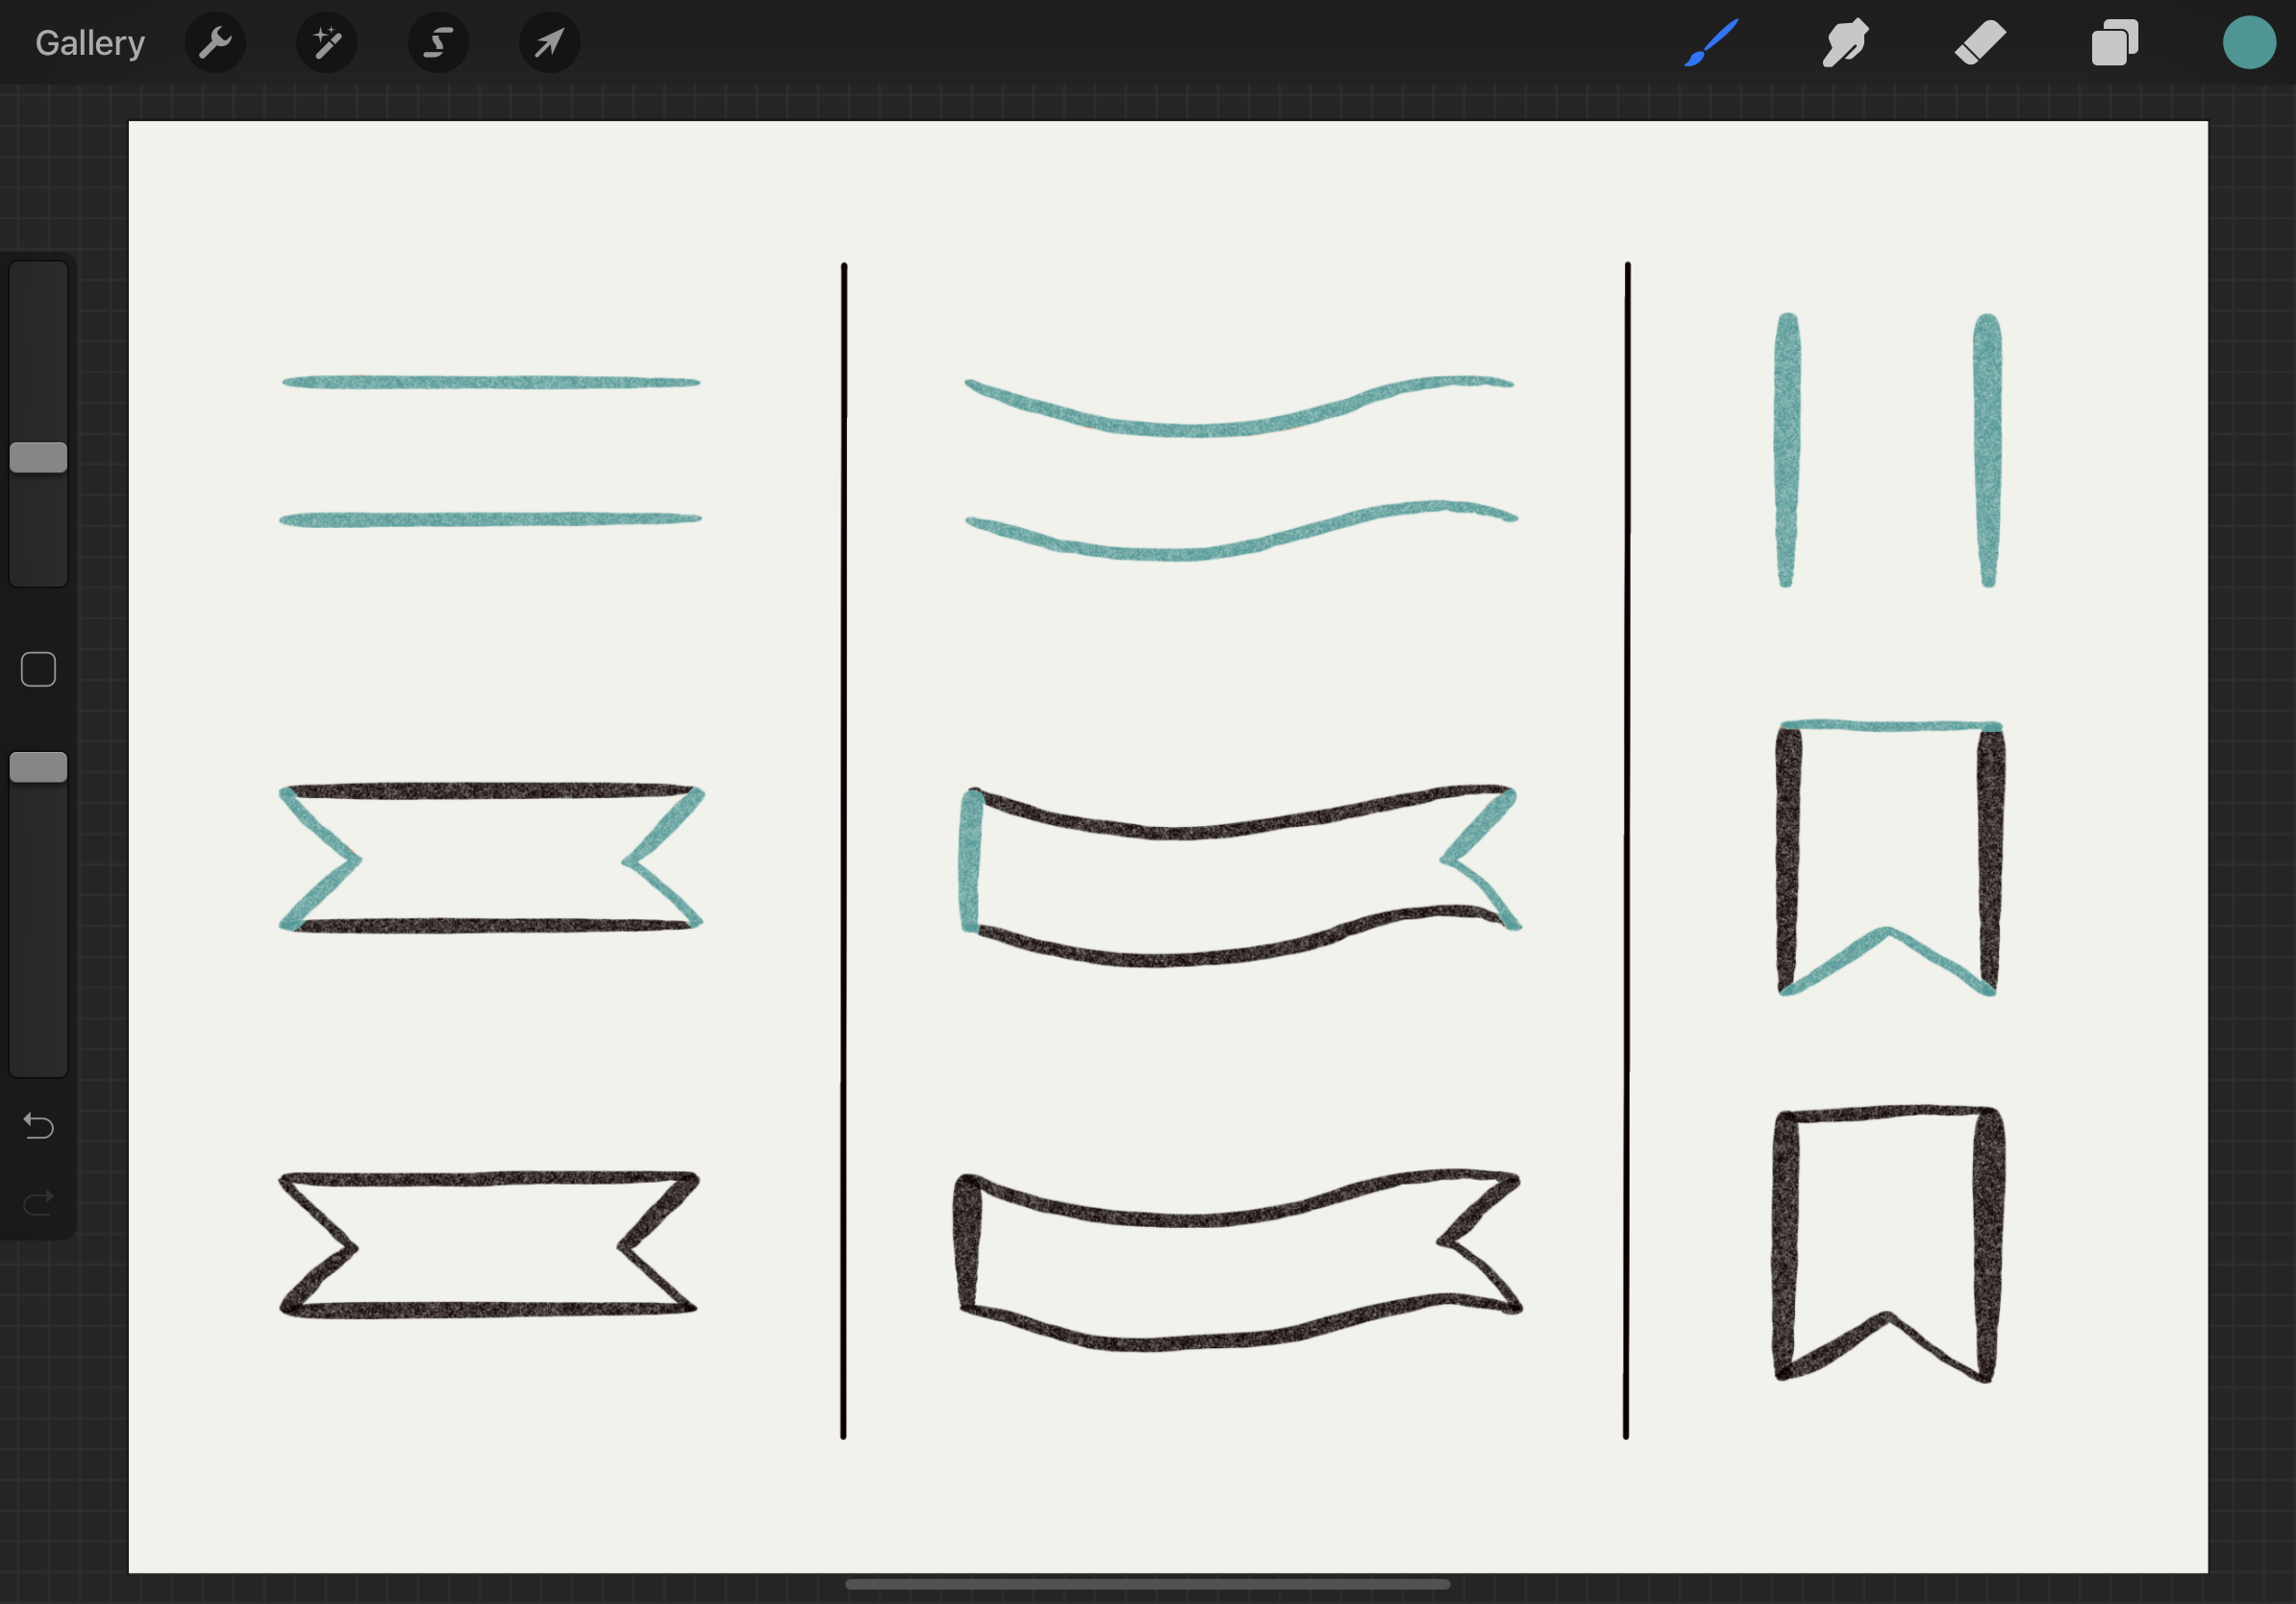 Basic Ribbon Banners in Procreate